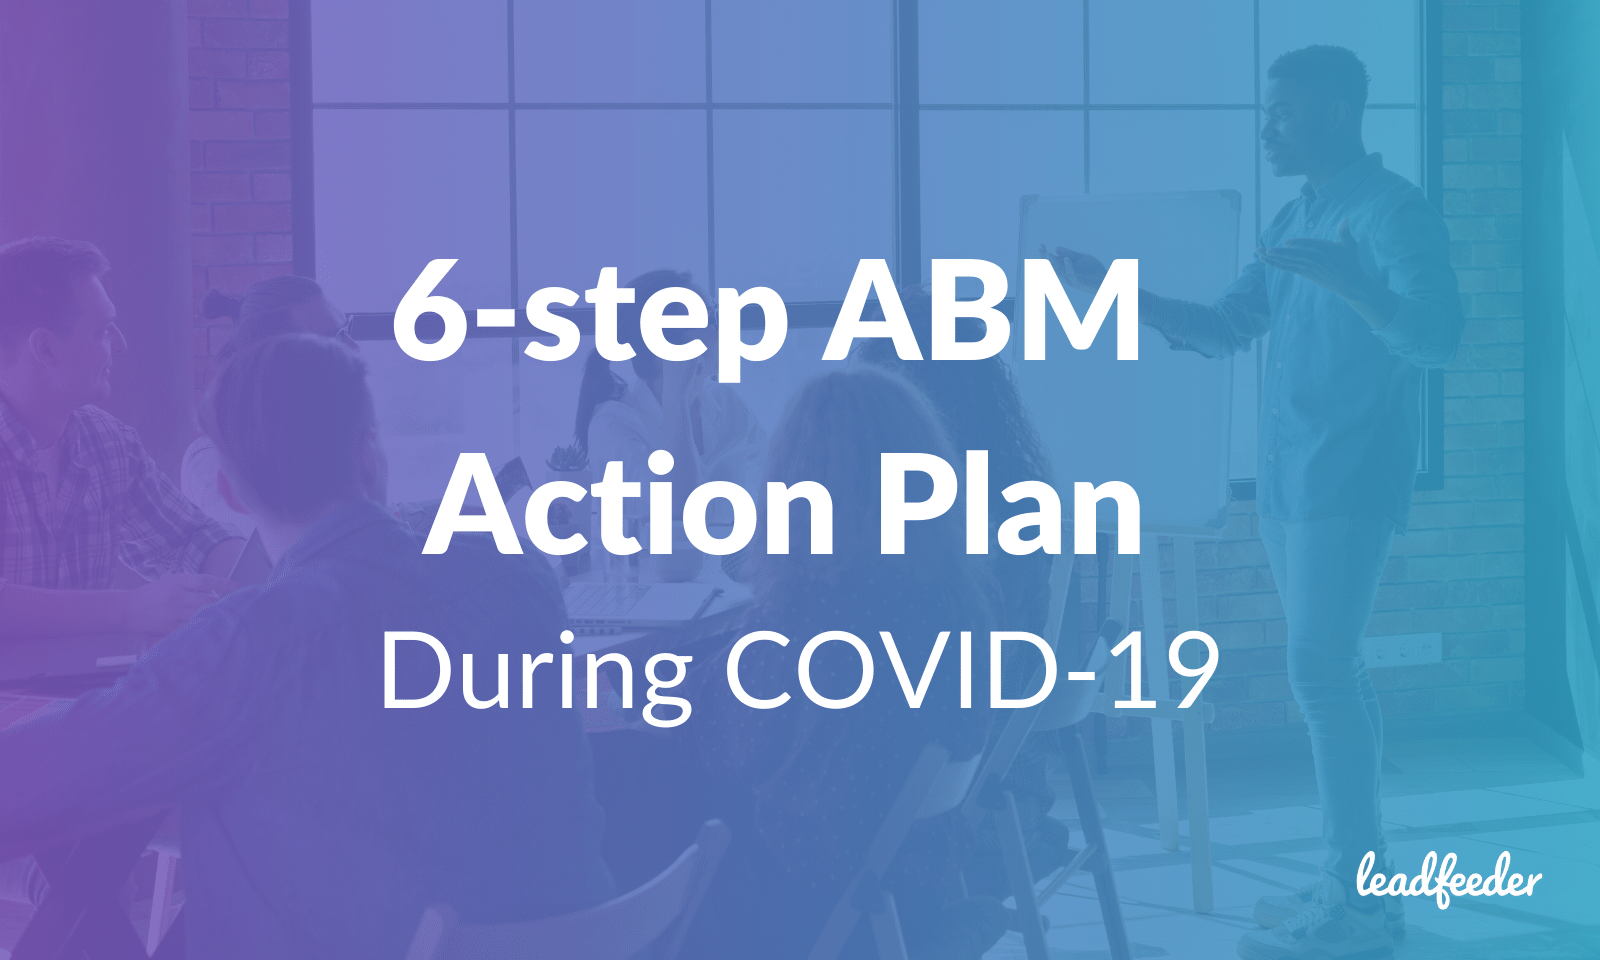 Account-based marketing during COVID-19